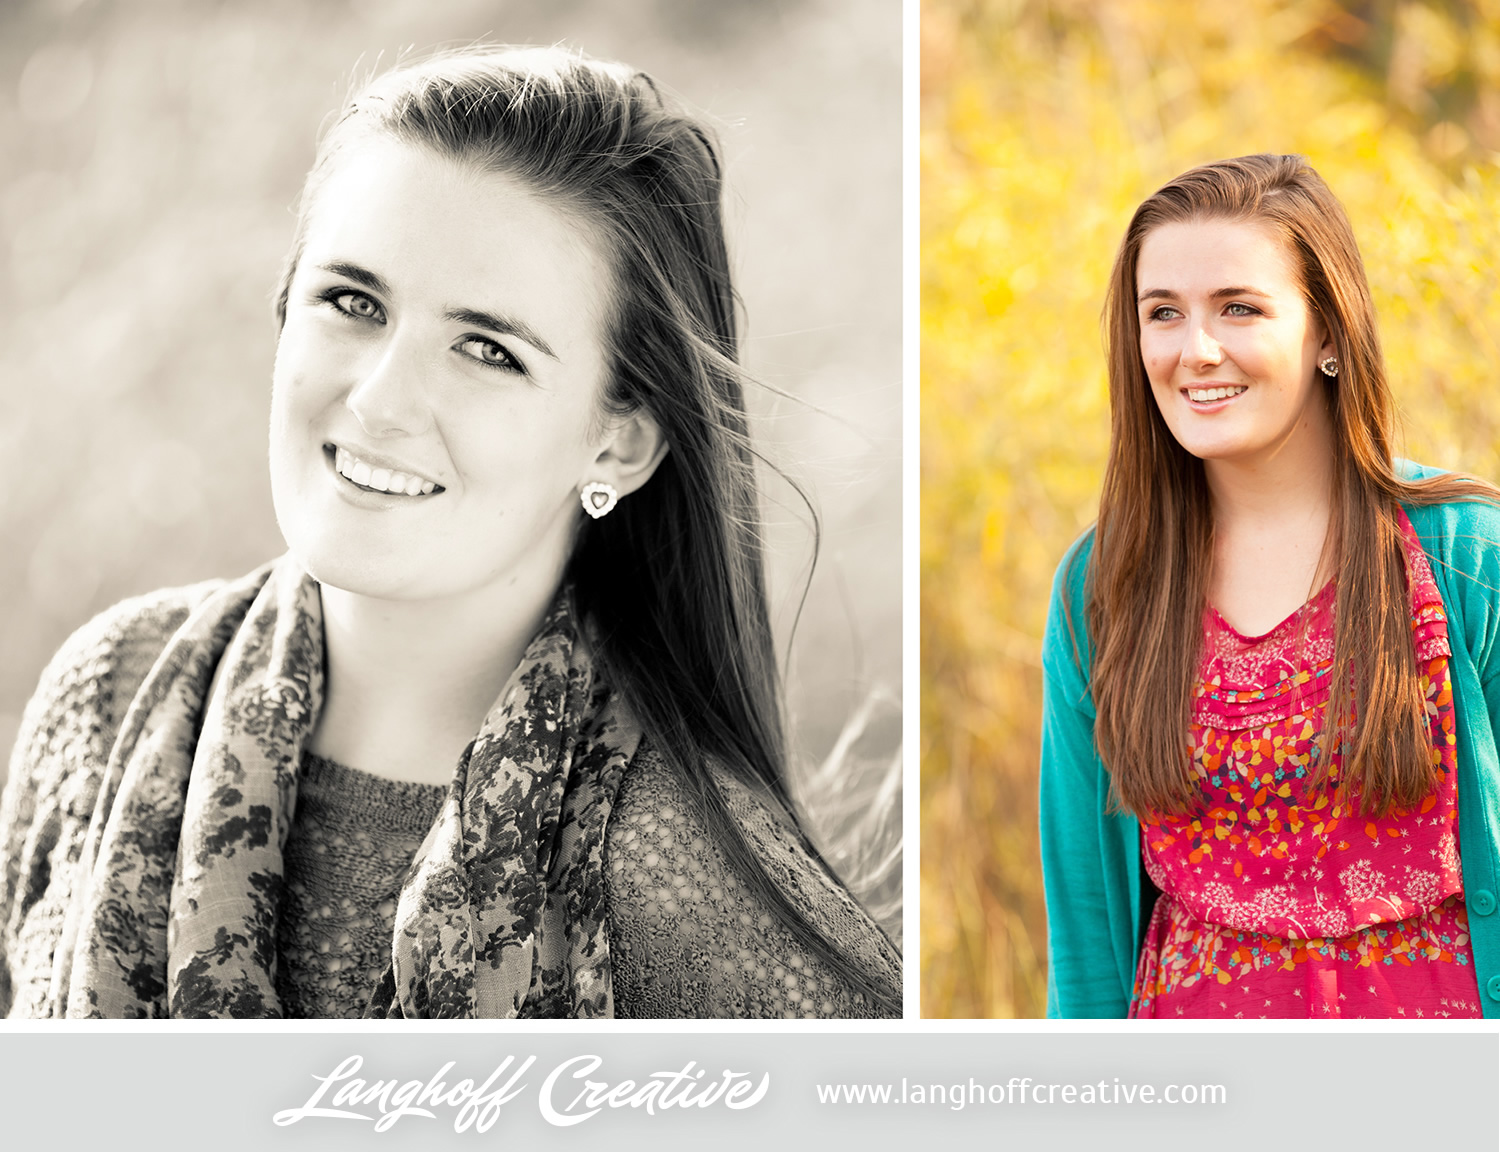 LanghoffCreative-2013RacineSeniorPortrait-Aja03-photo.jpg